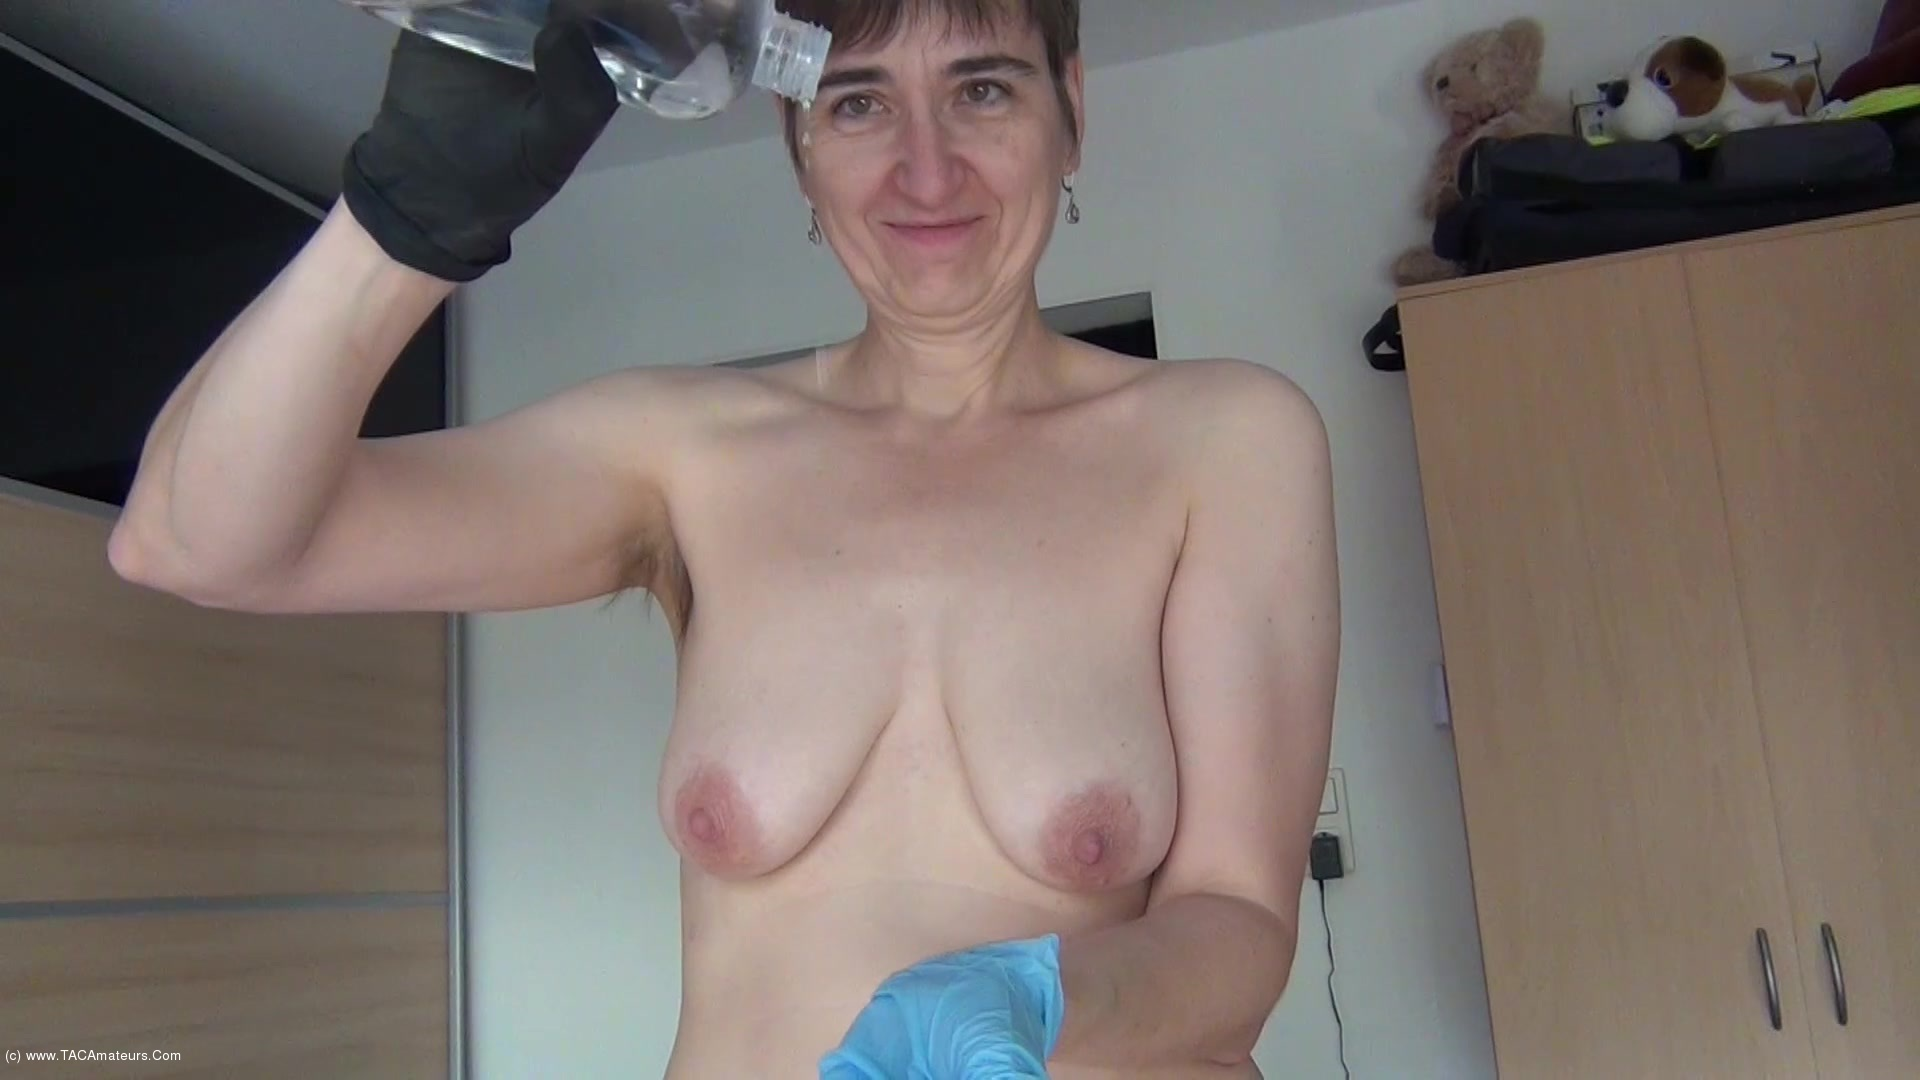 HotMilf - Sperm Game With Gloves scene 2